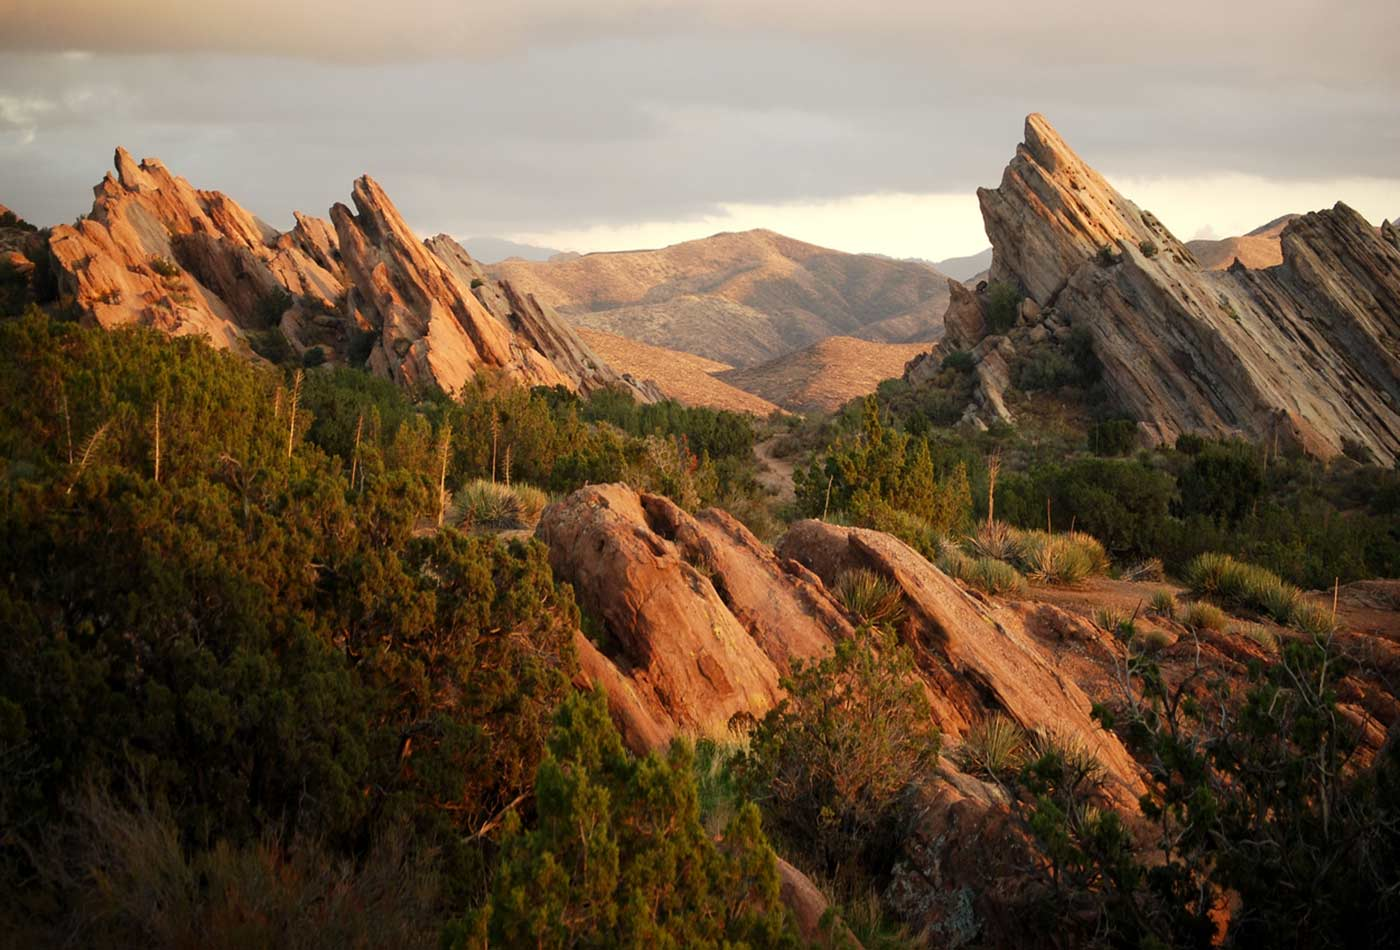 Vasquez Rocks in Agua Dulce, California are evidence of the San Andreas Faultline and part of the 2,650 mile Pacific Crest Trail.